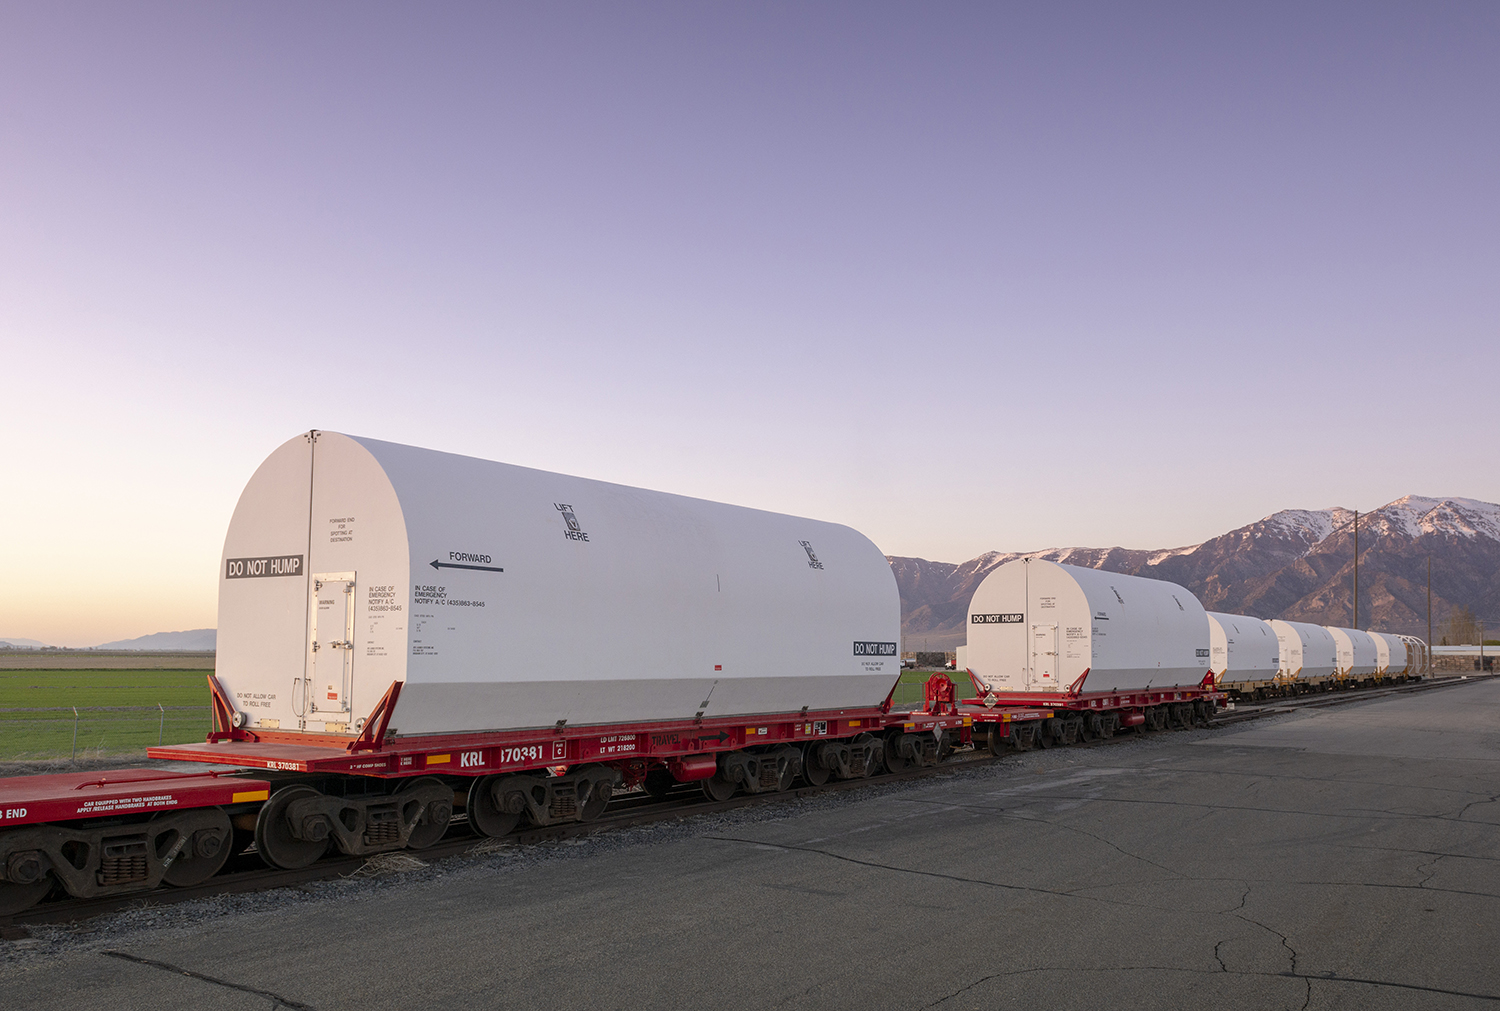 OmegA pathfinder segments loaded onto specialized 12-axle rail cars are ready for their 10-day journey from Utah to Kennedy Space Center, Florida. (May 2020)